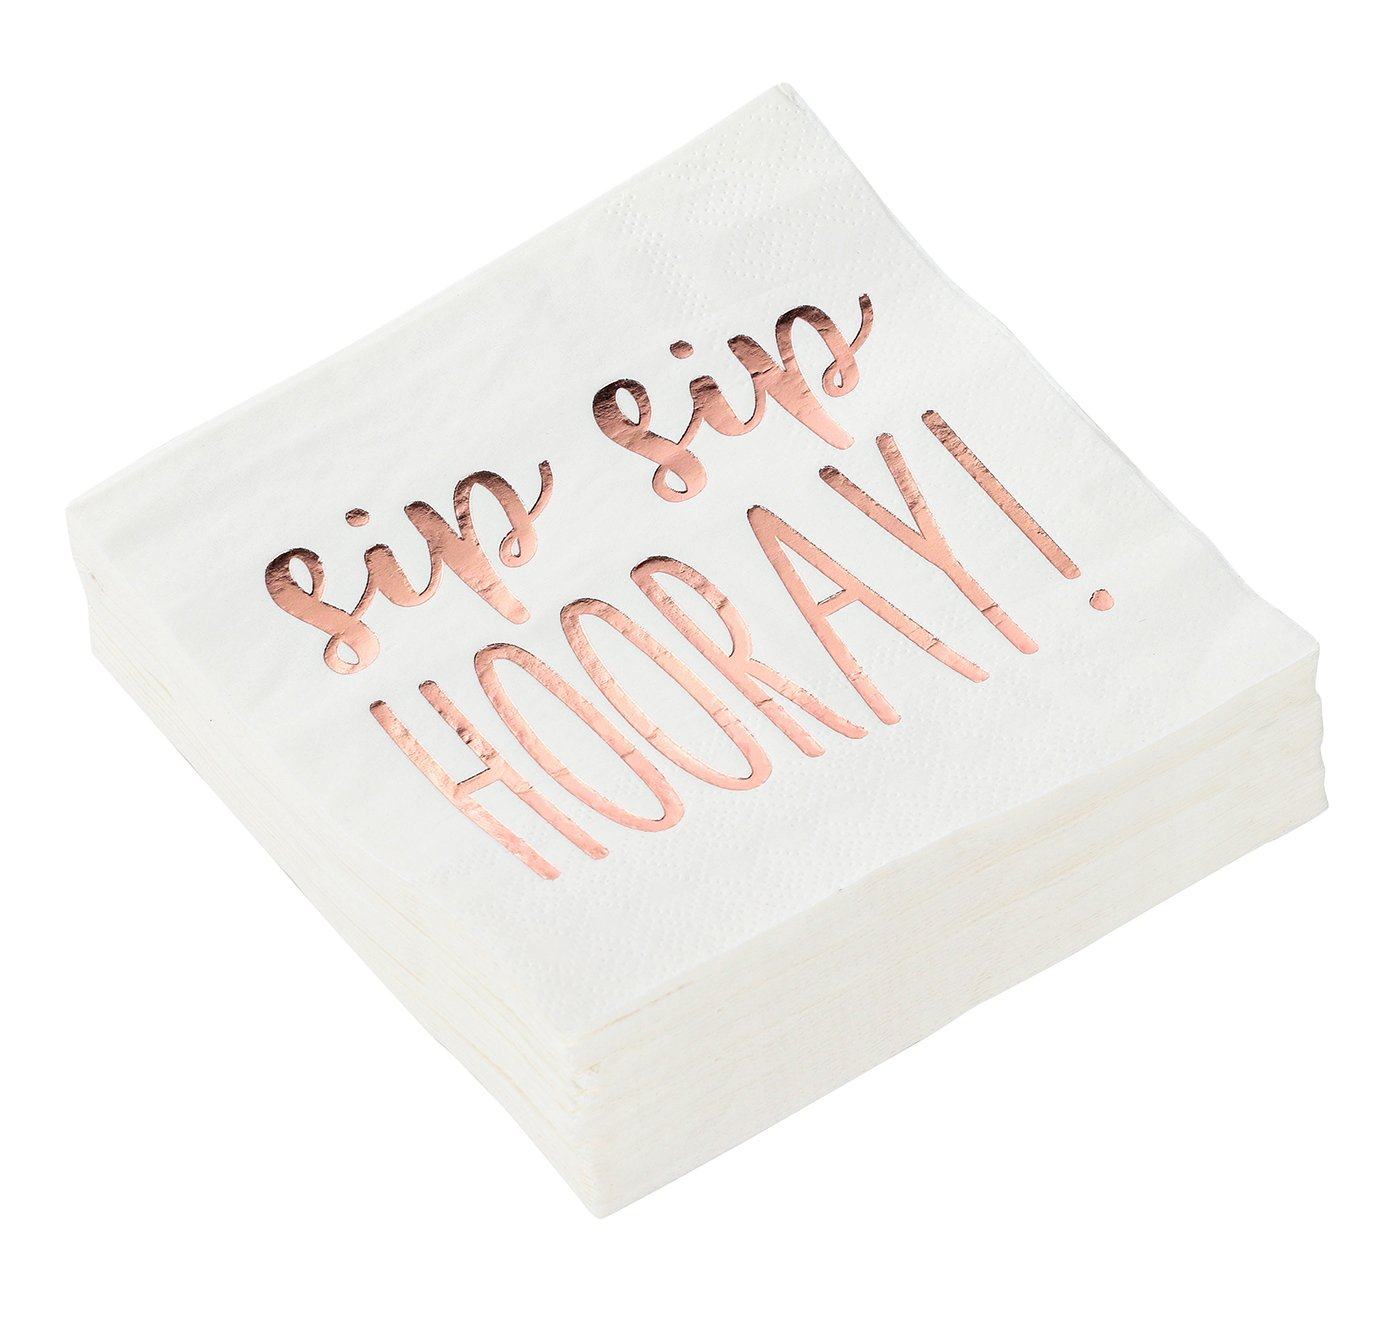 Cocktail Napkins - 50-Pack Luncheon Napkins, Disposable Paper Napkins Party Supplies, 3-Ply, Sip Sip Hooray, Rose Gold Foil Print, Unfolded 10 x 10 inches, Folded 5 x 5 inches